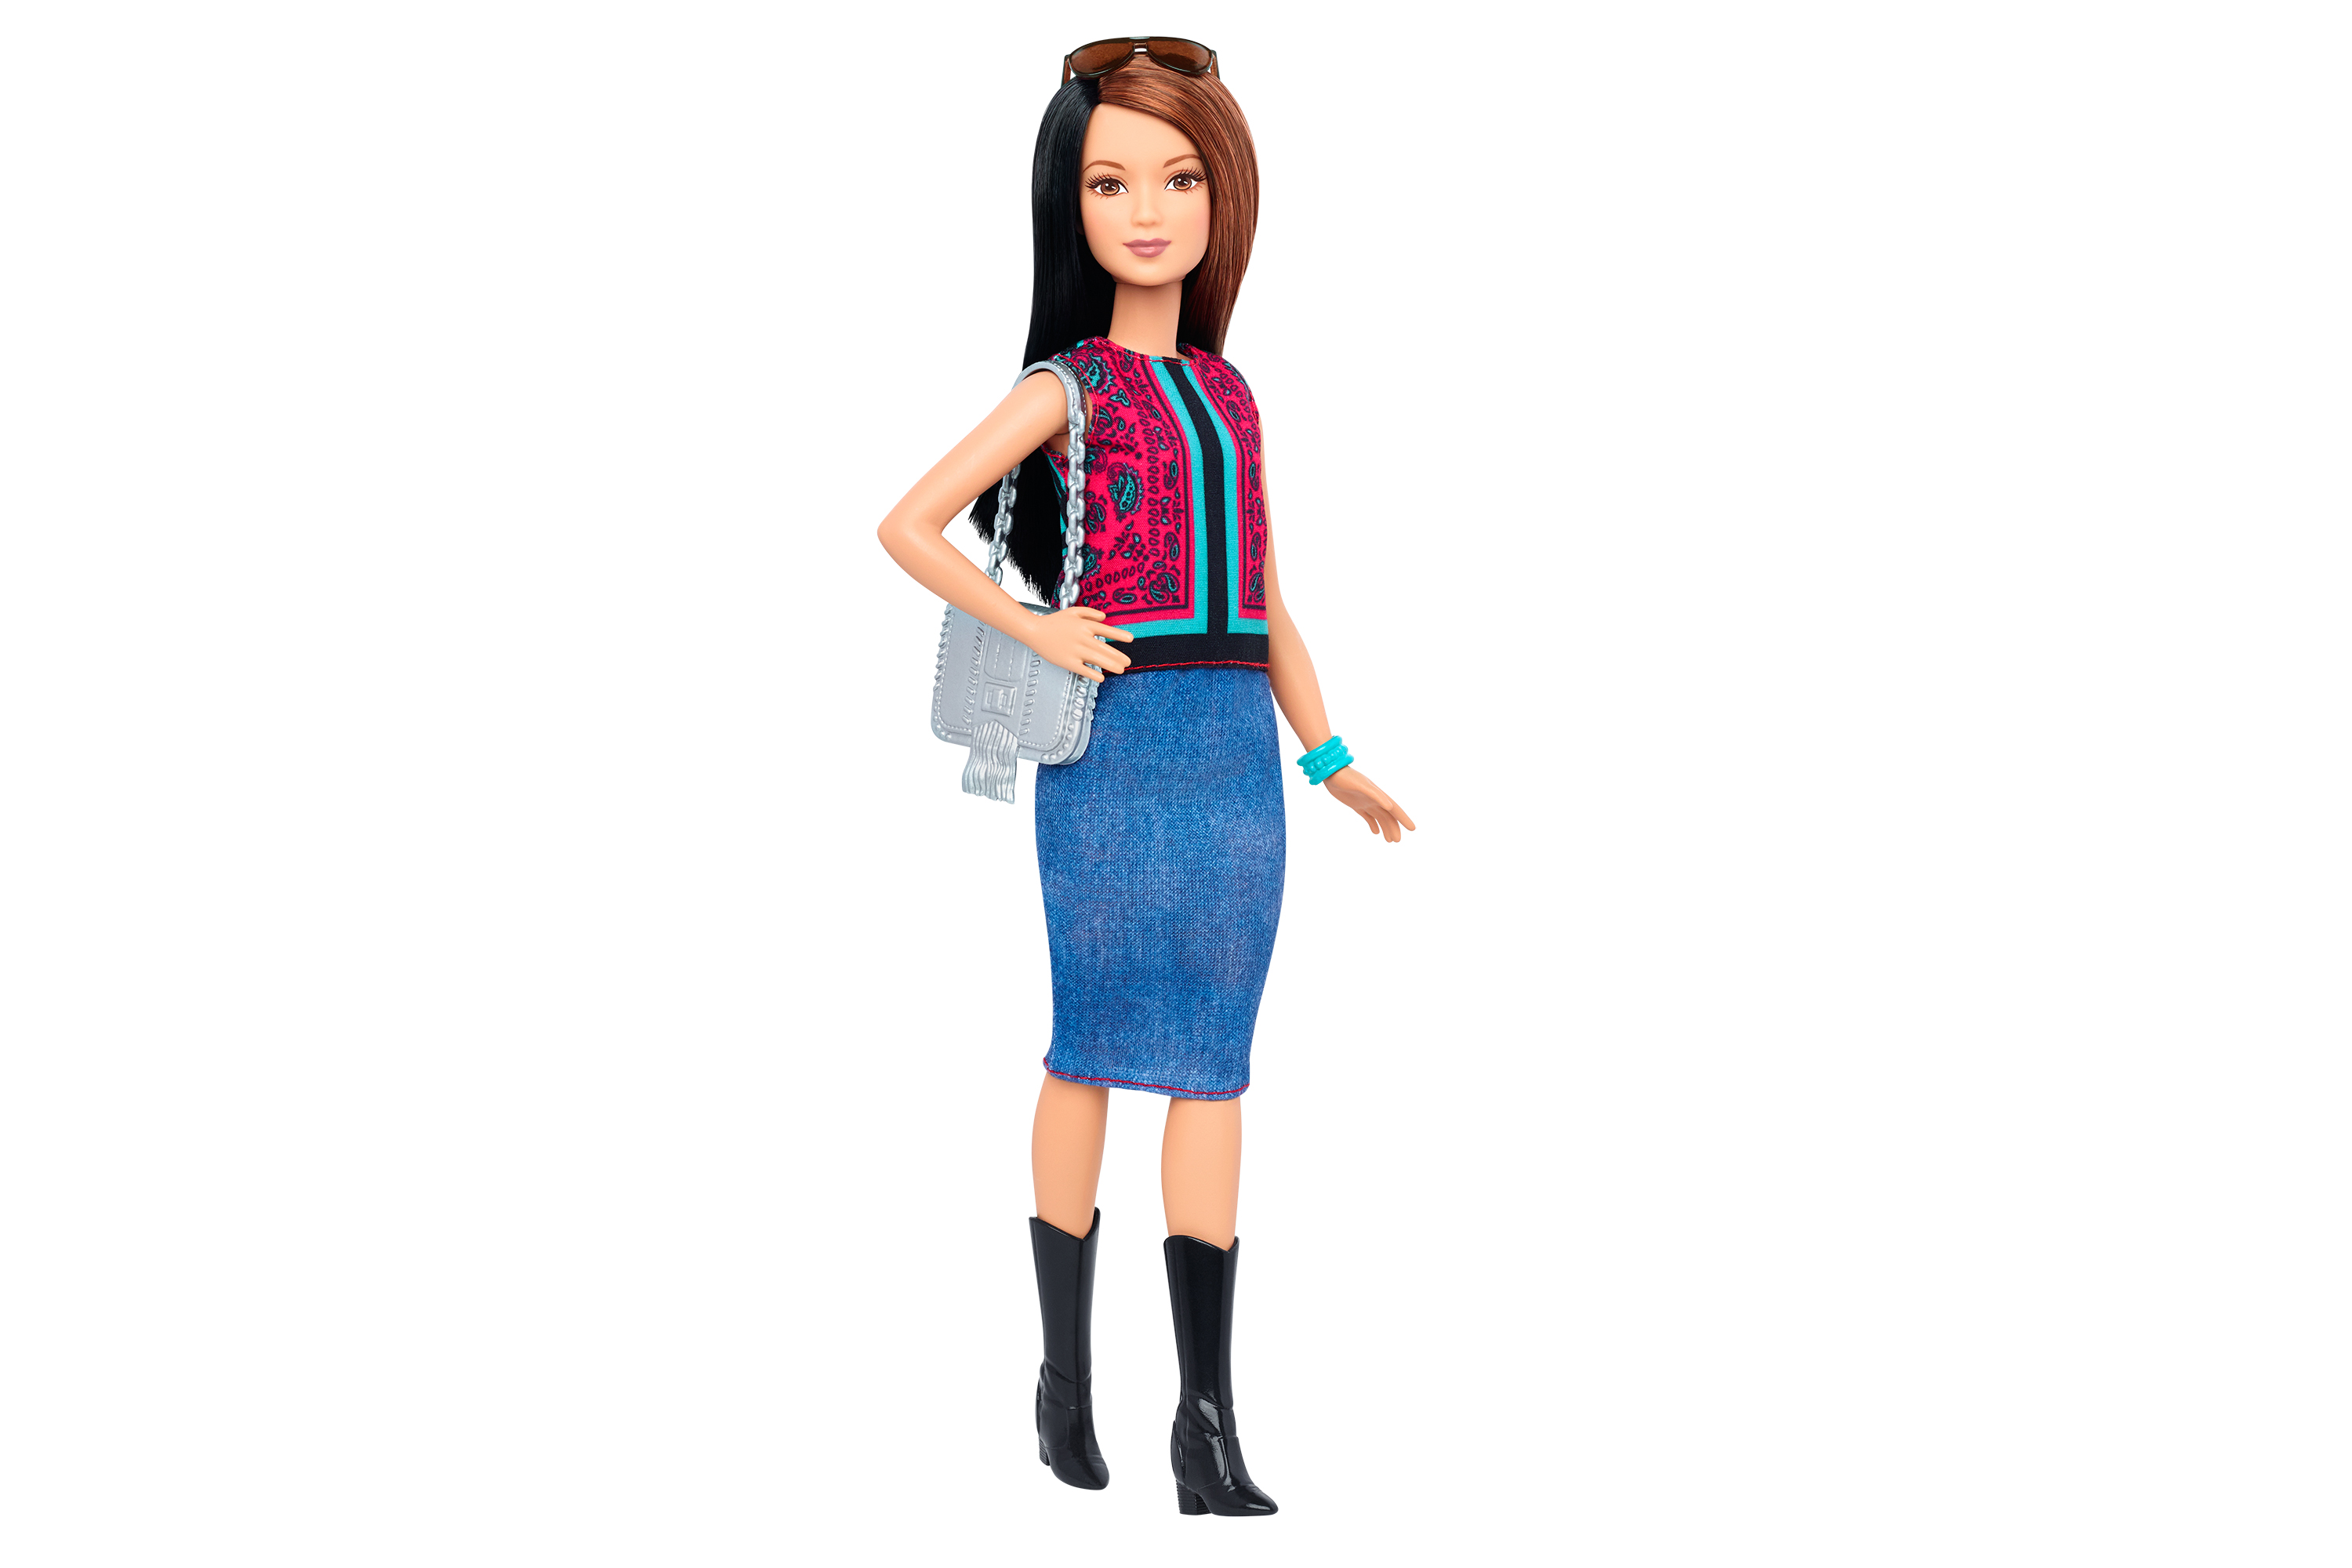 One of Mattel's new Petite Barbies